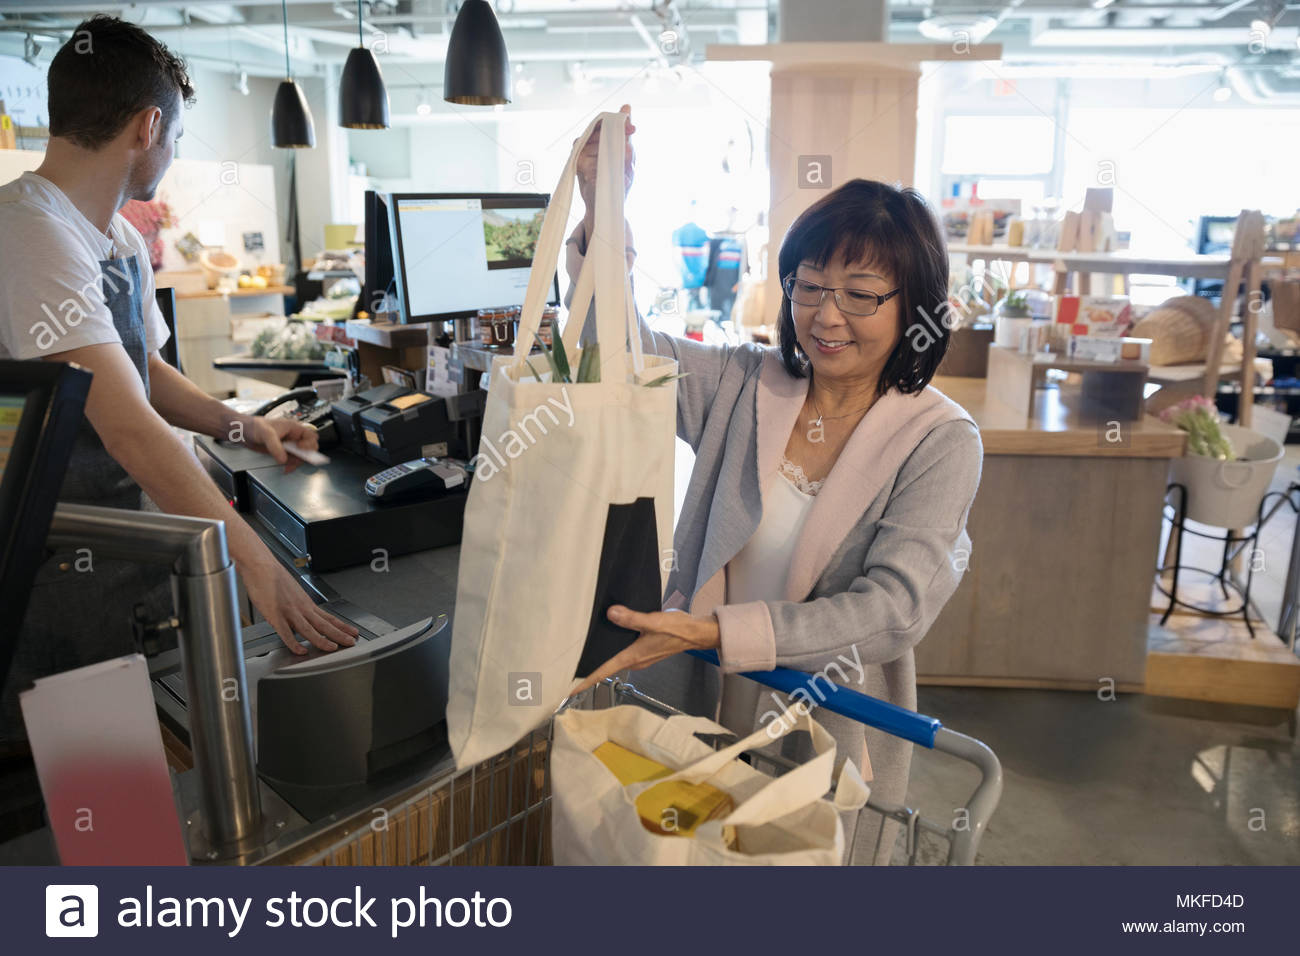 Smiling senior woman placing reusable bags in shopping cart at grocery store checkout - Stock Image